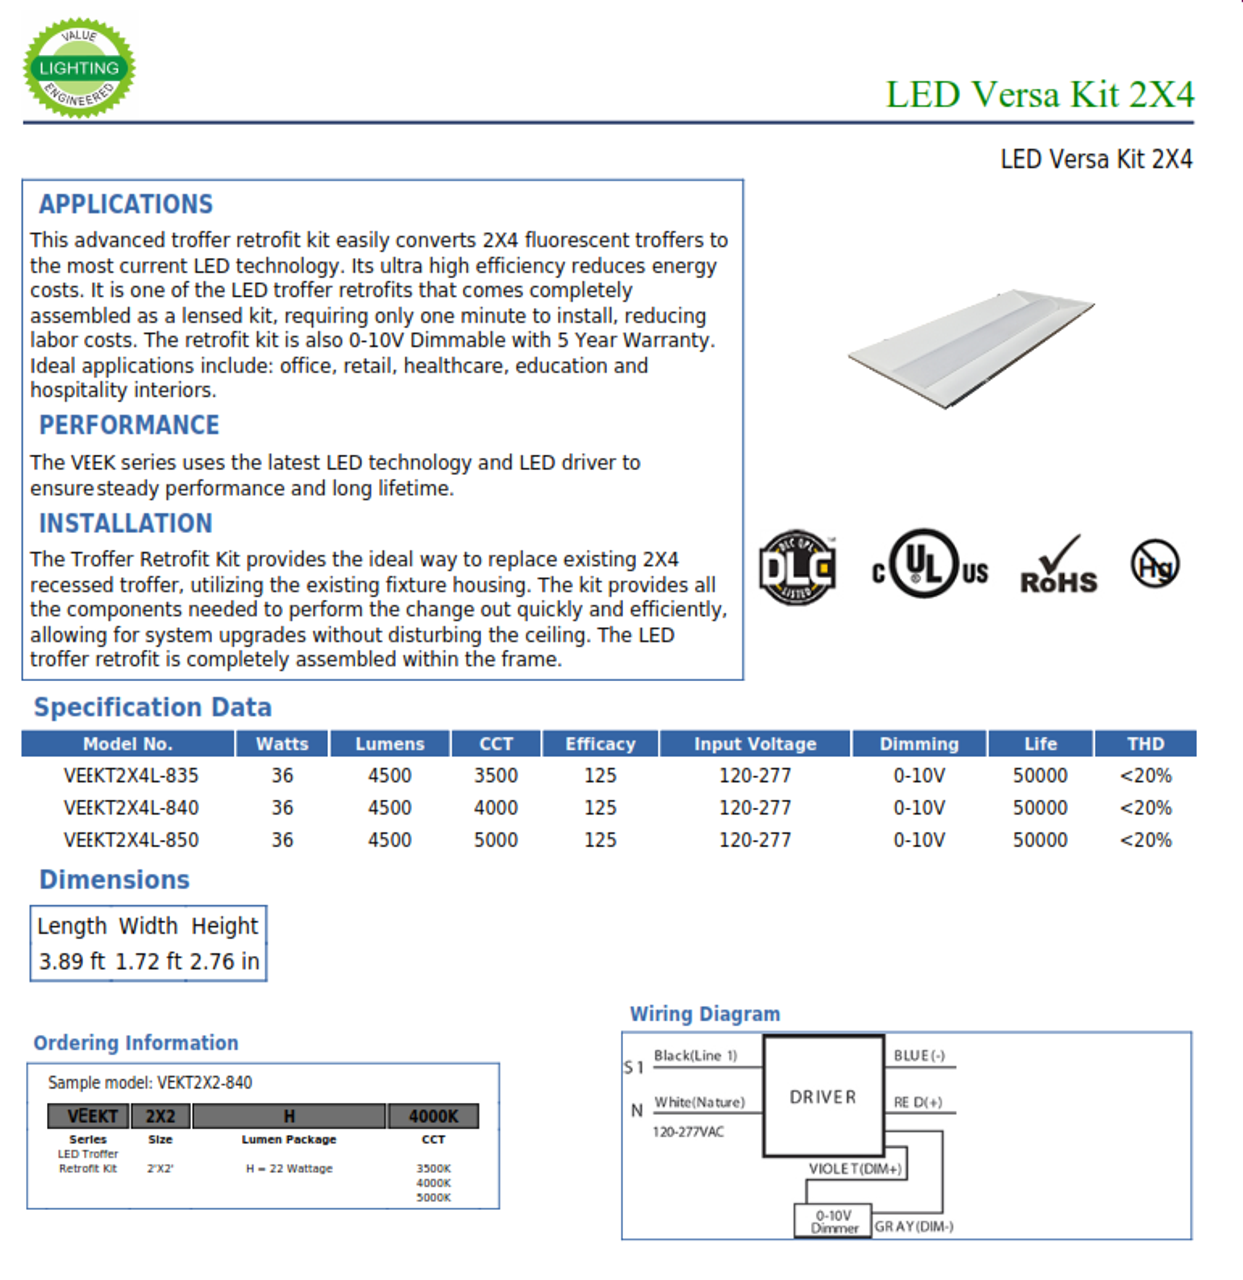 This advanced troffer retrofit kit easily converts 2X4 fluorescent troffers to the most current LED technology. Its ultra high efficiency reduces energy costs.